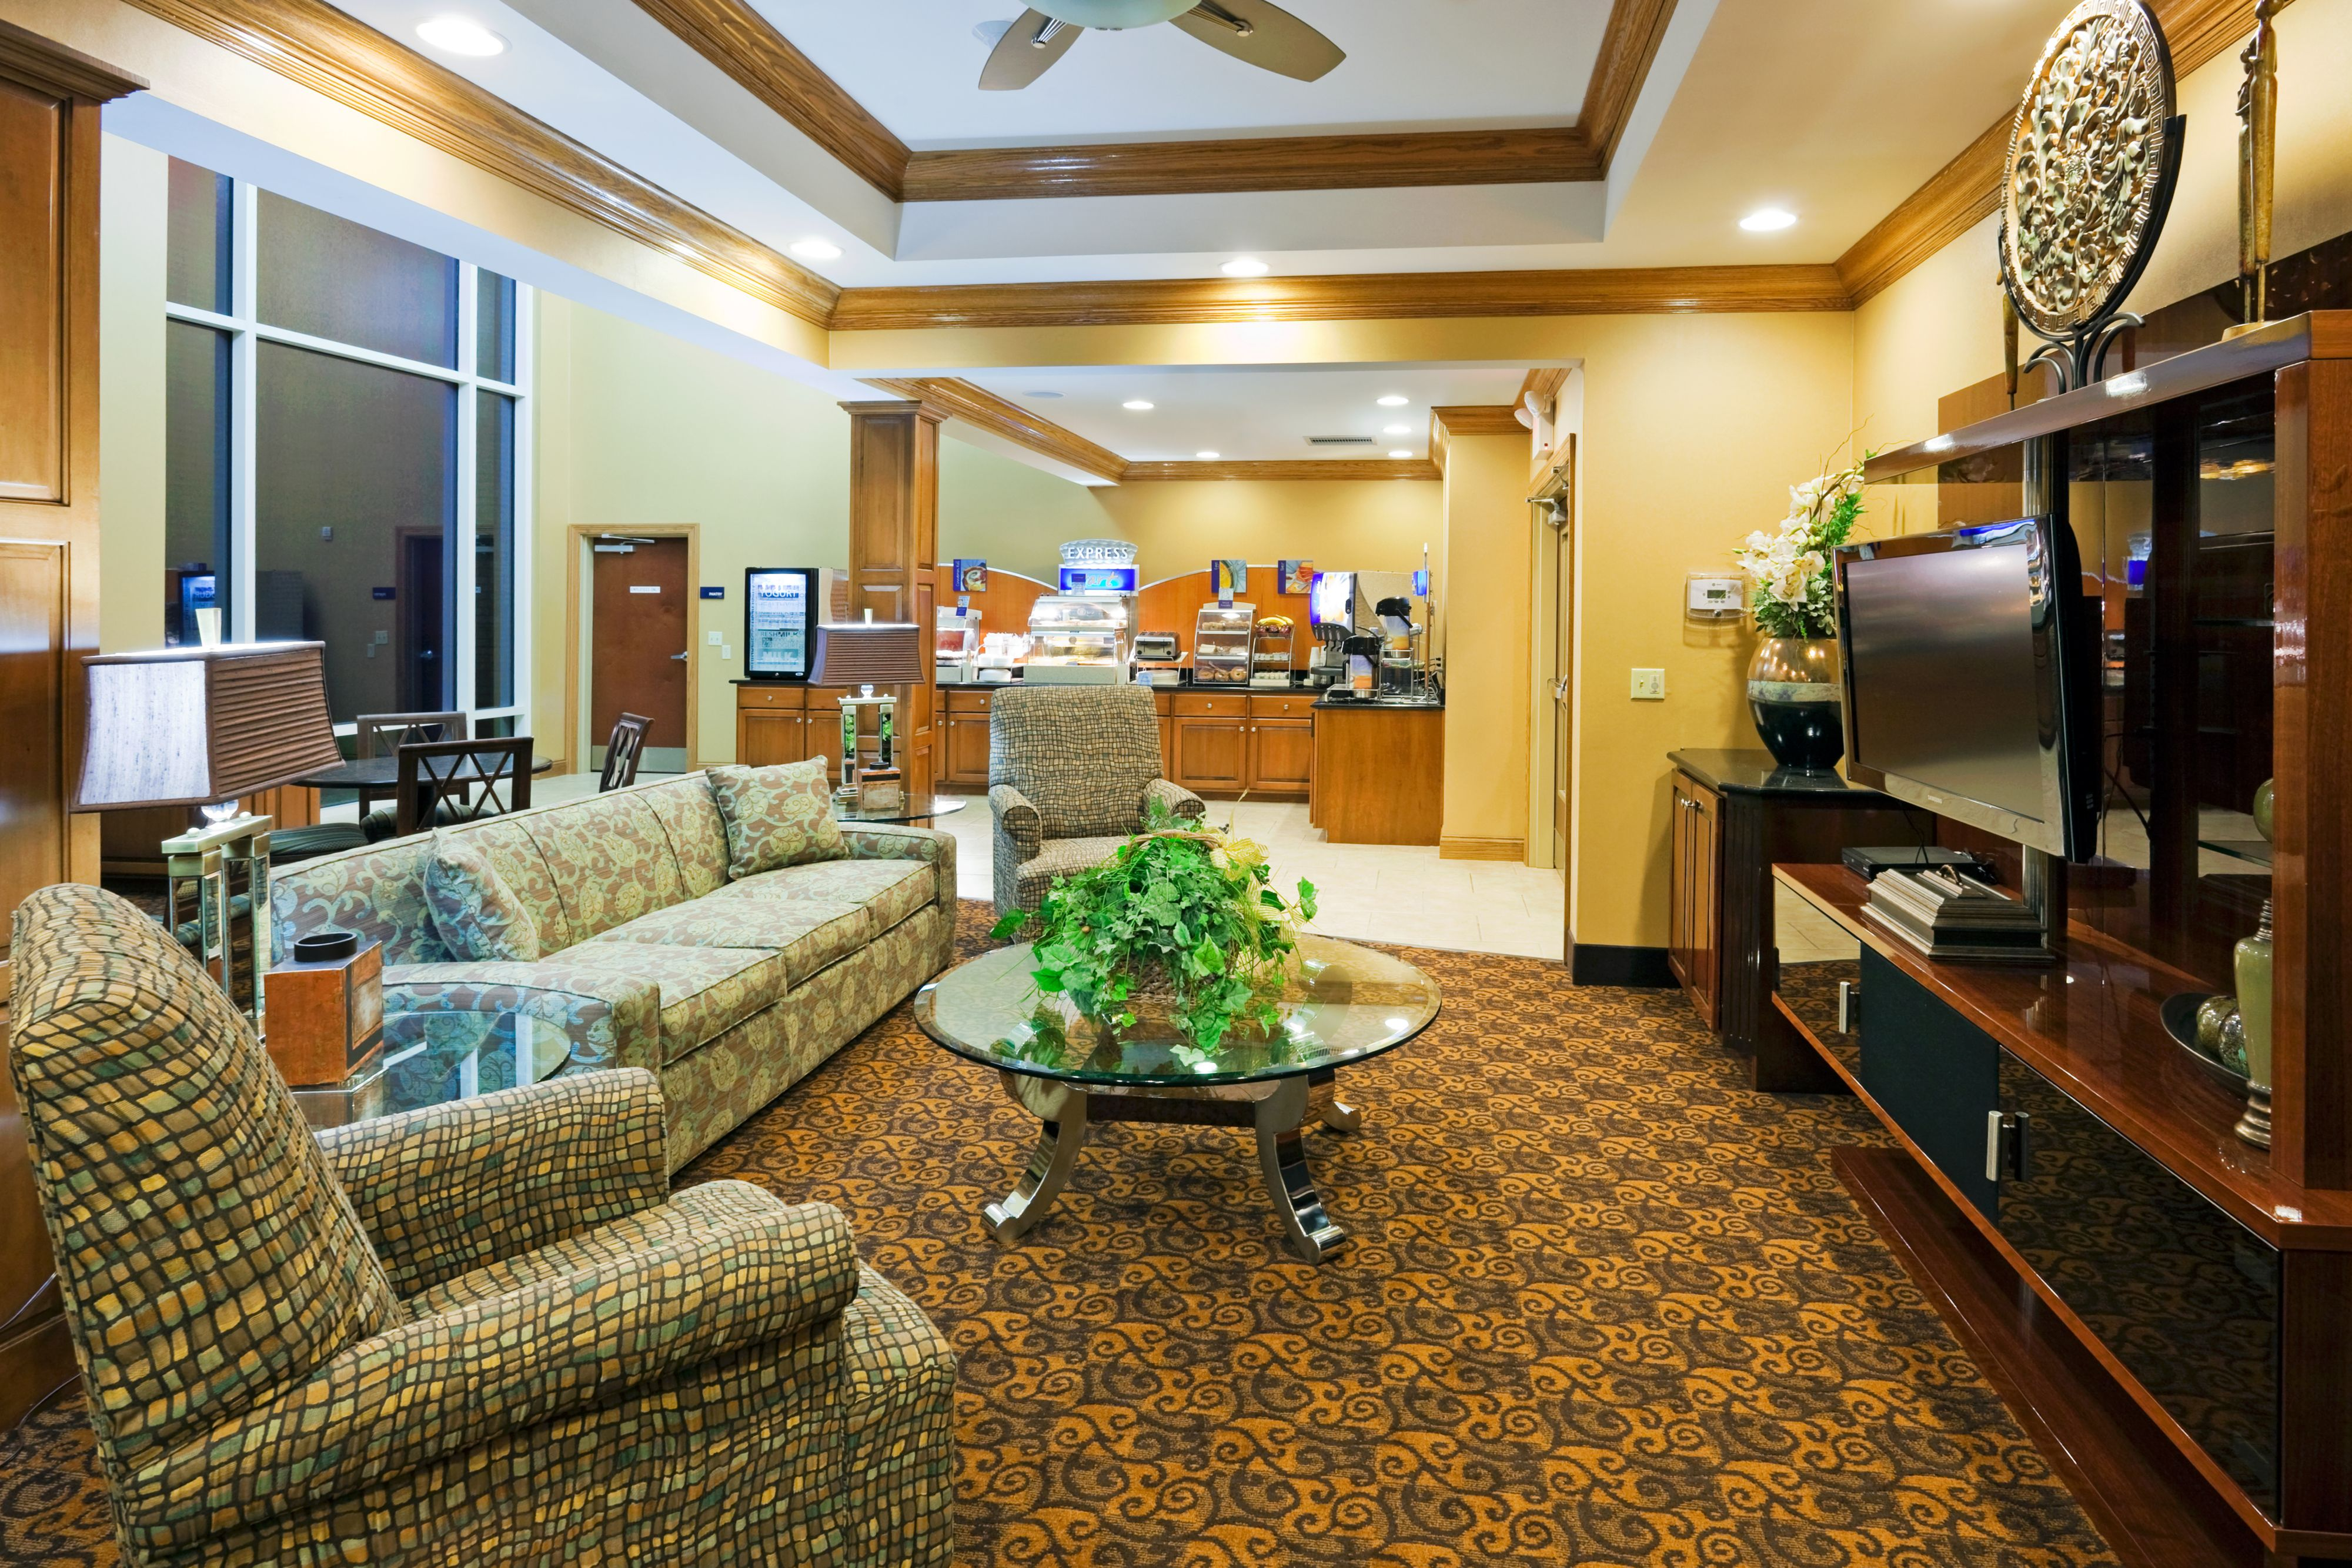 Holiday Inn Express & Suites Somerset Central image 4